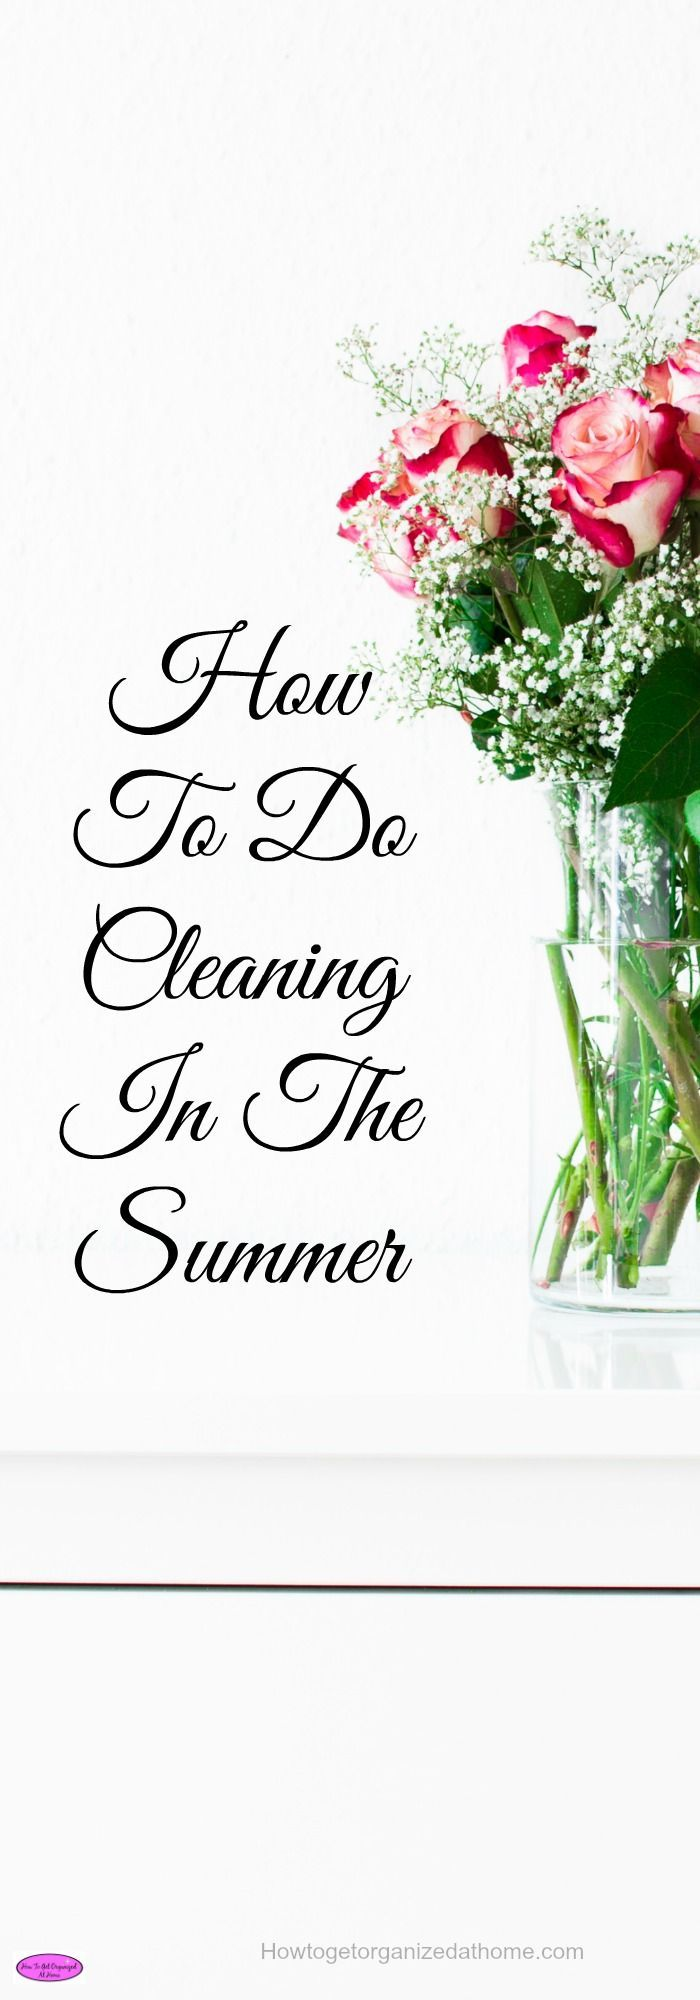 1410 best images about cleaning your home on pinterest homemade